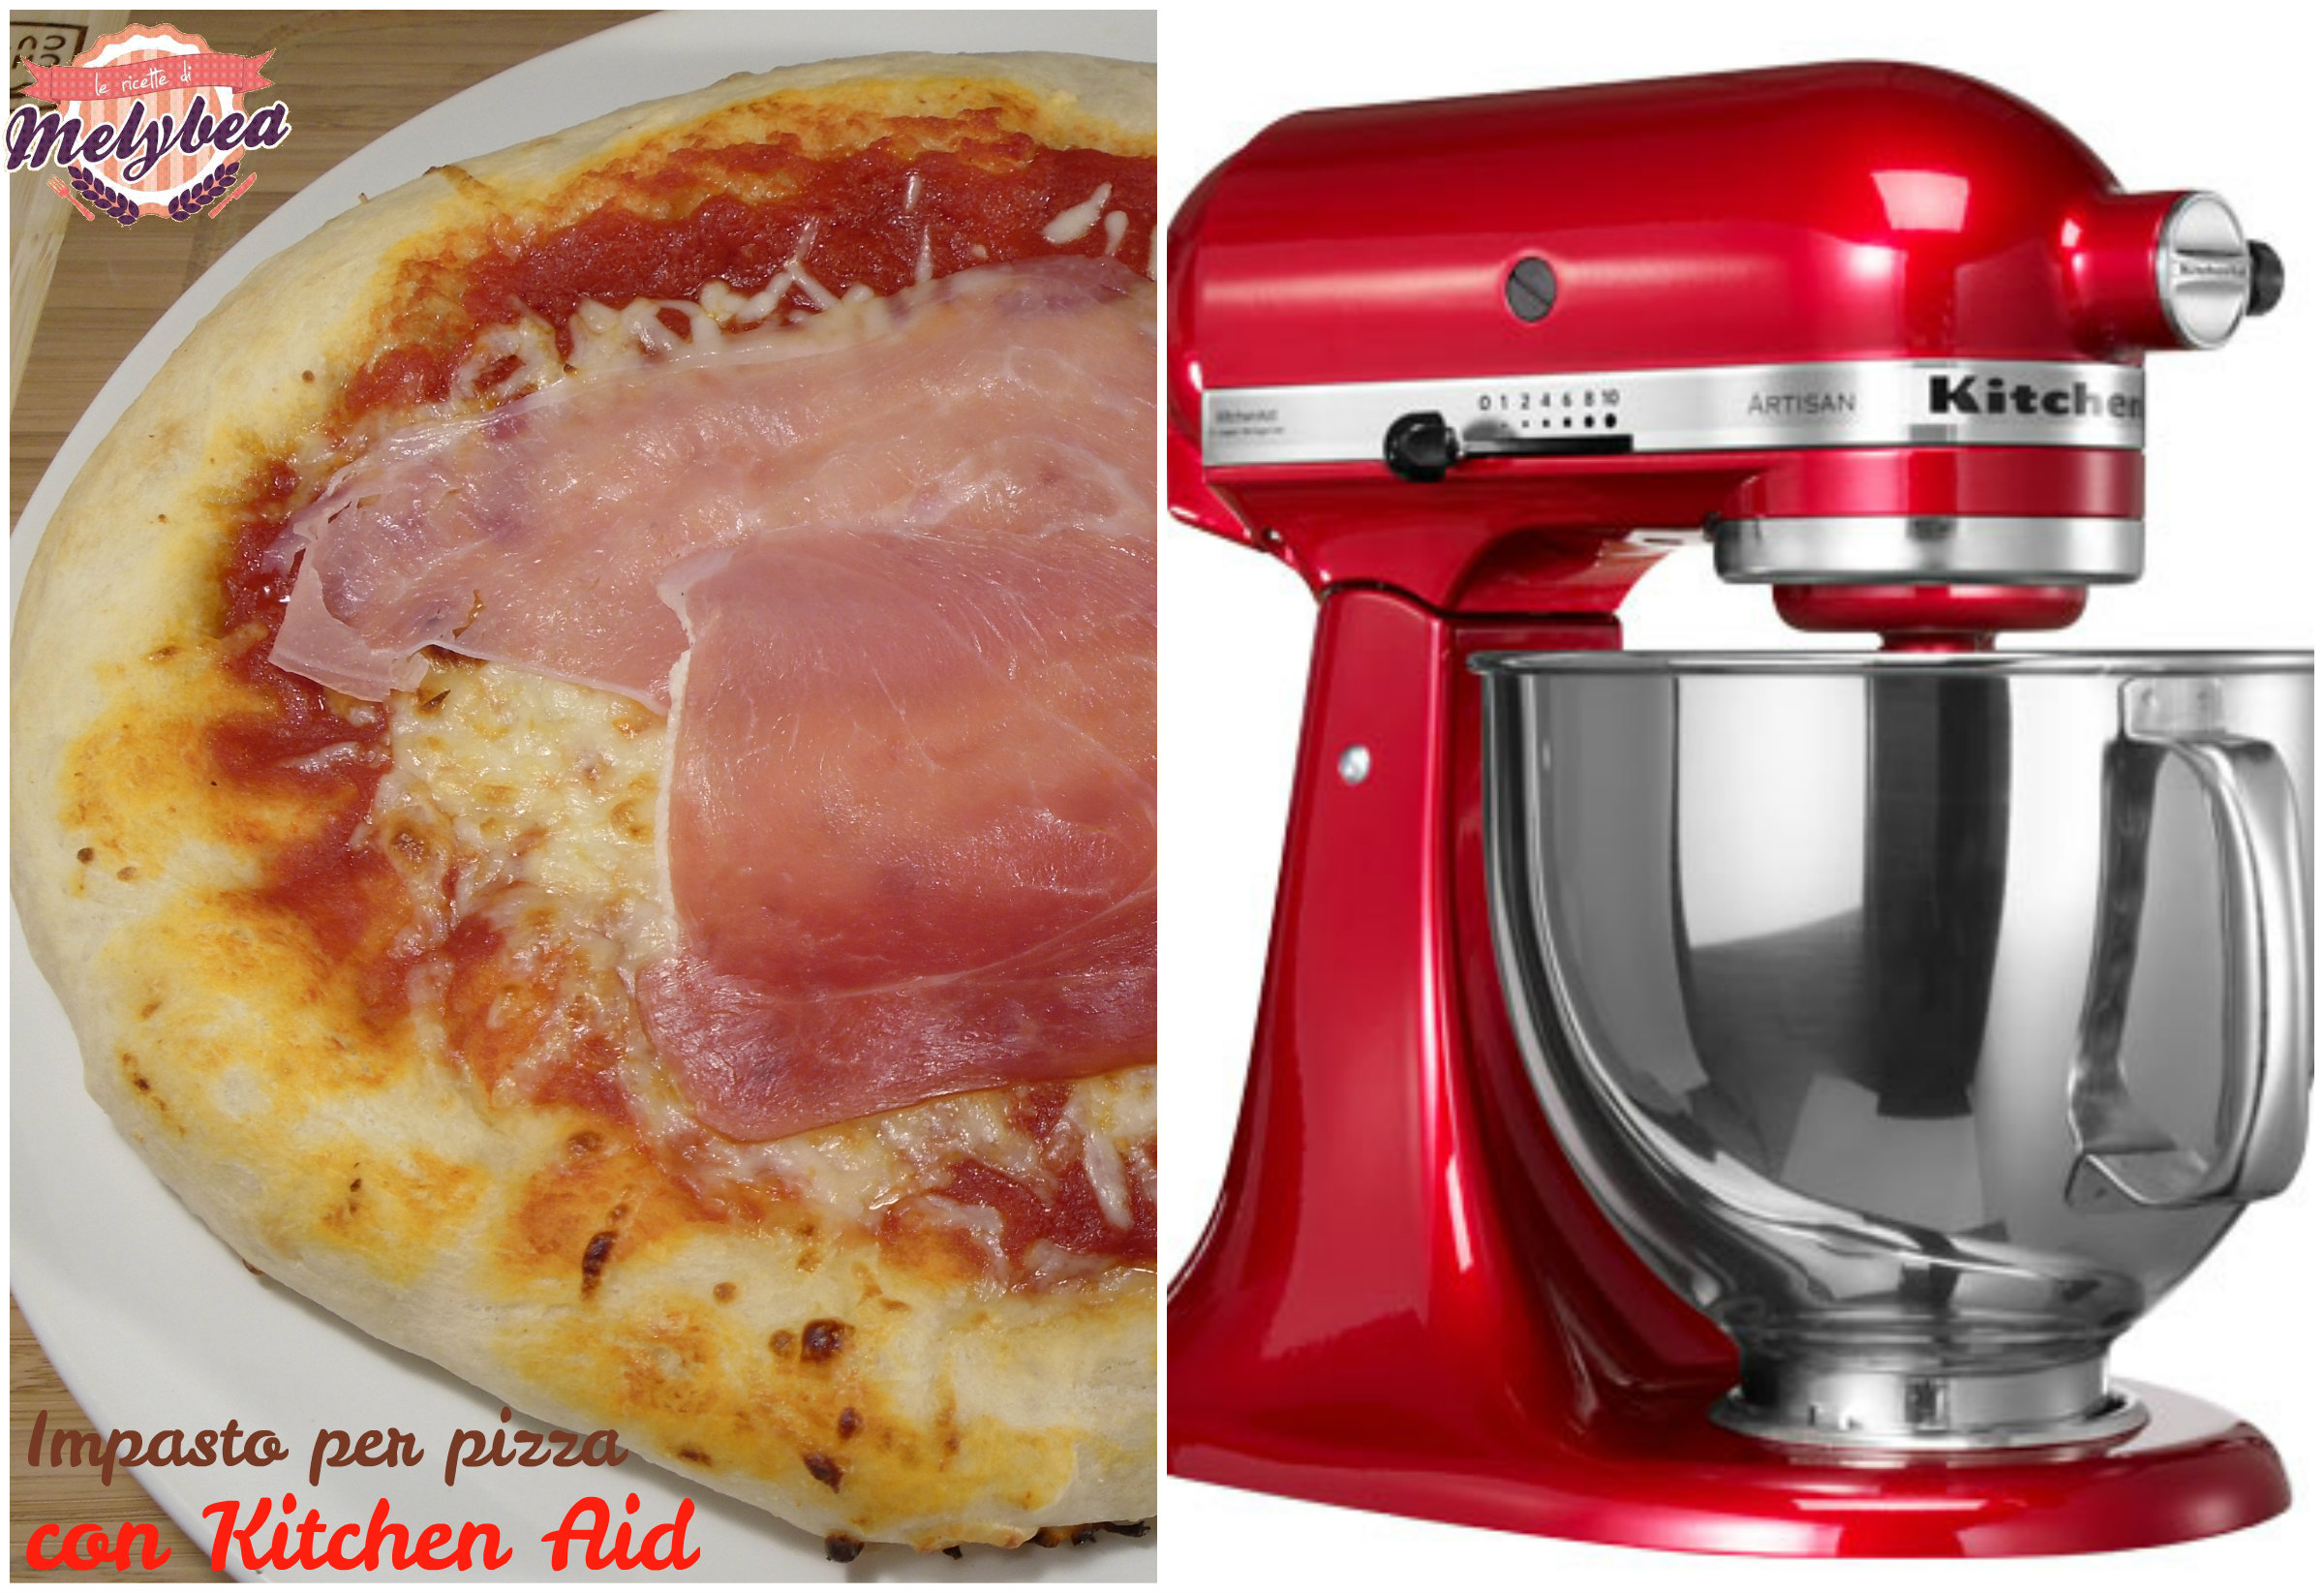 impasto per pizza con kitchen aid